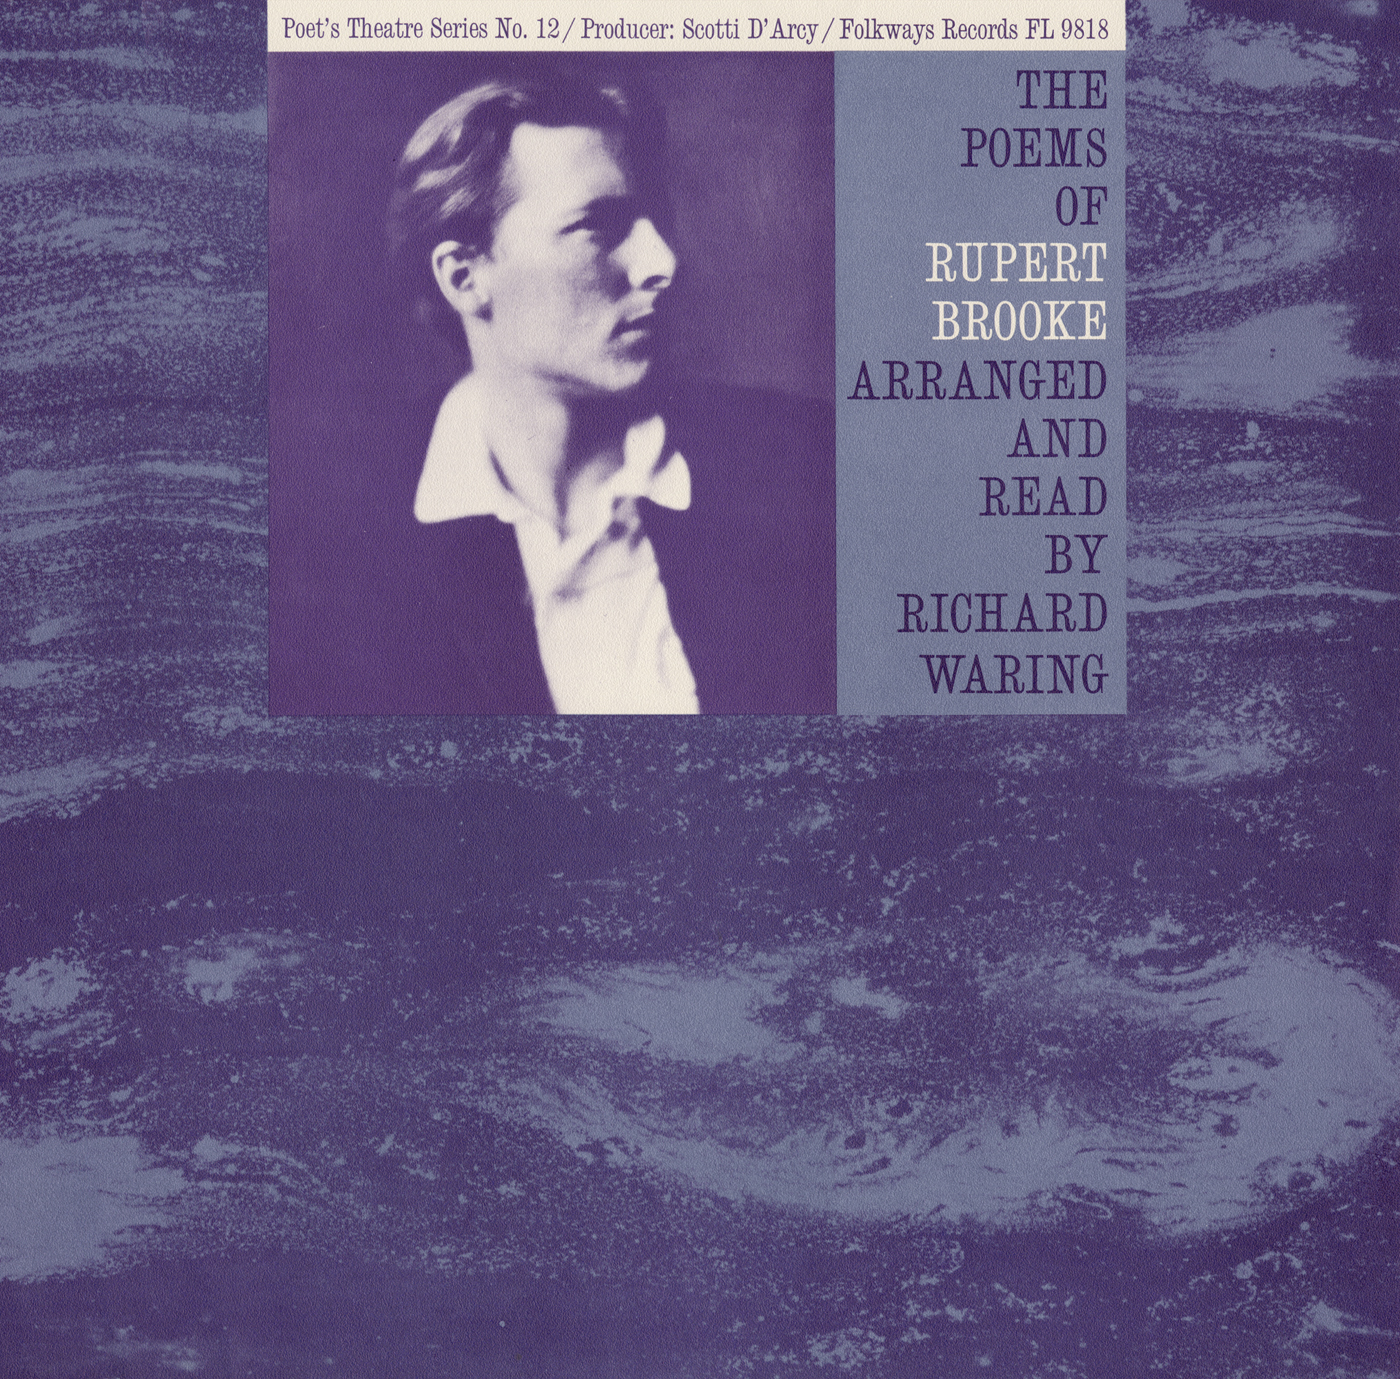 The Poems Of Rupert Brooke Arranged And Read By Richard